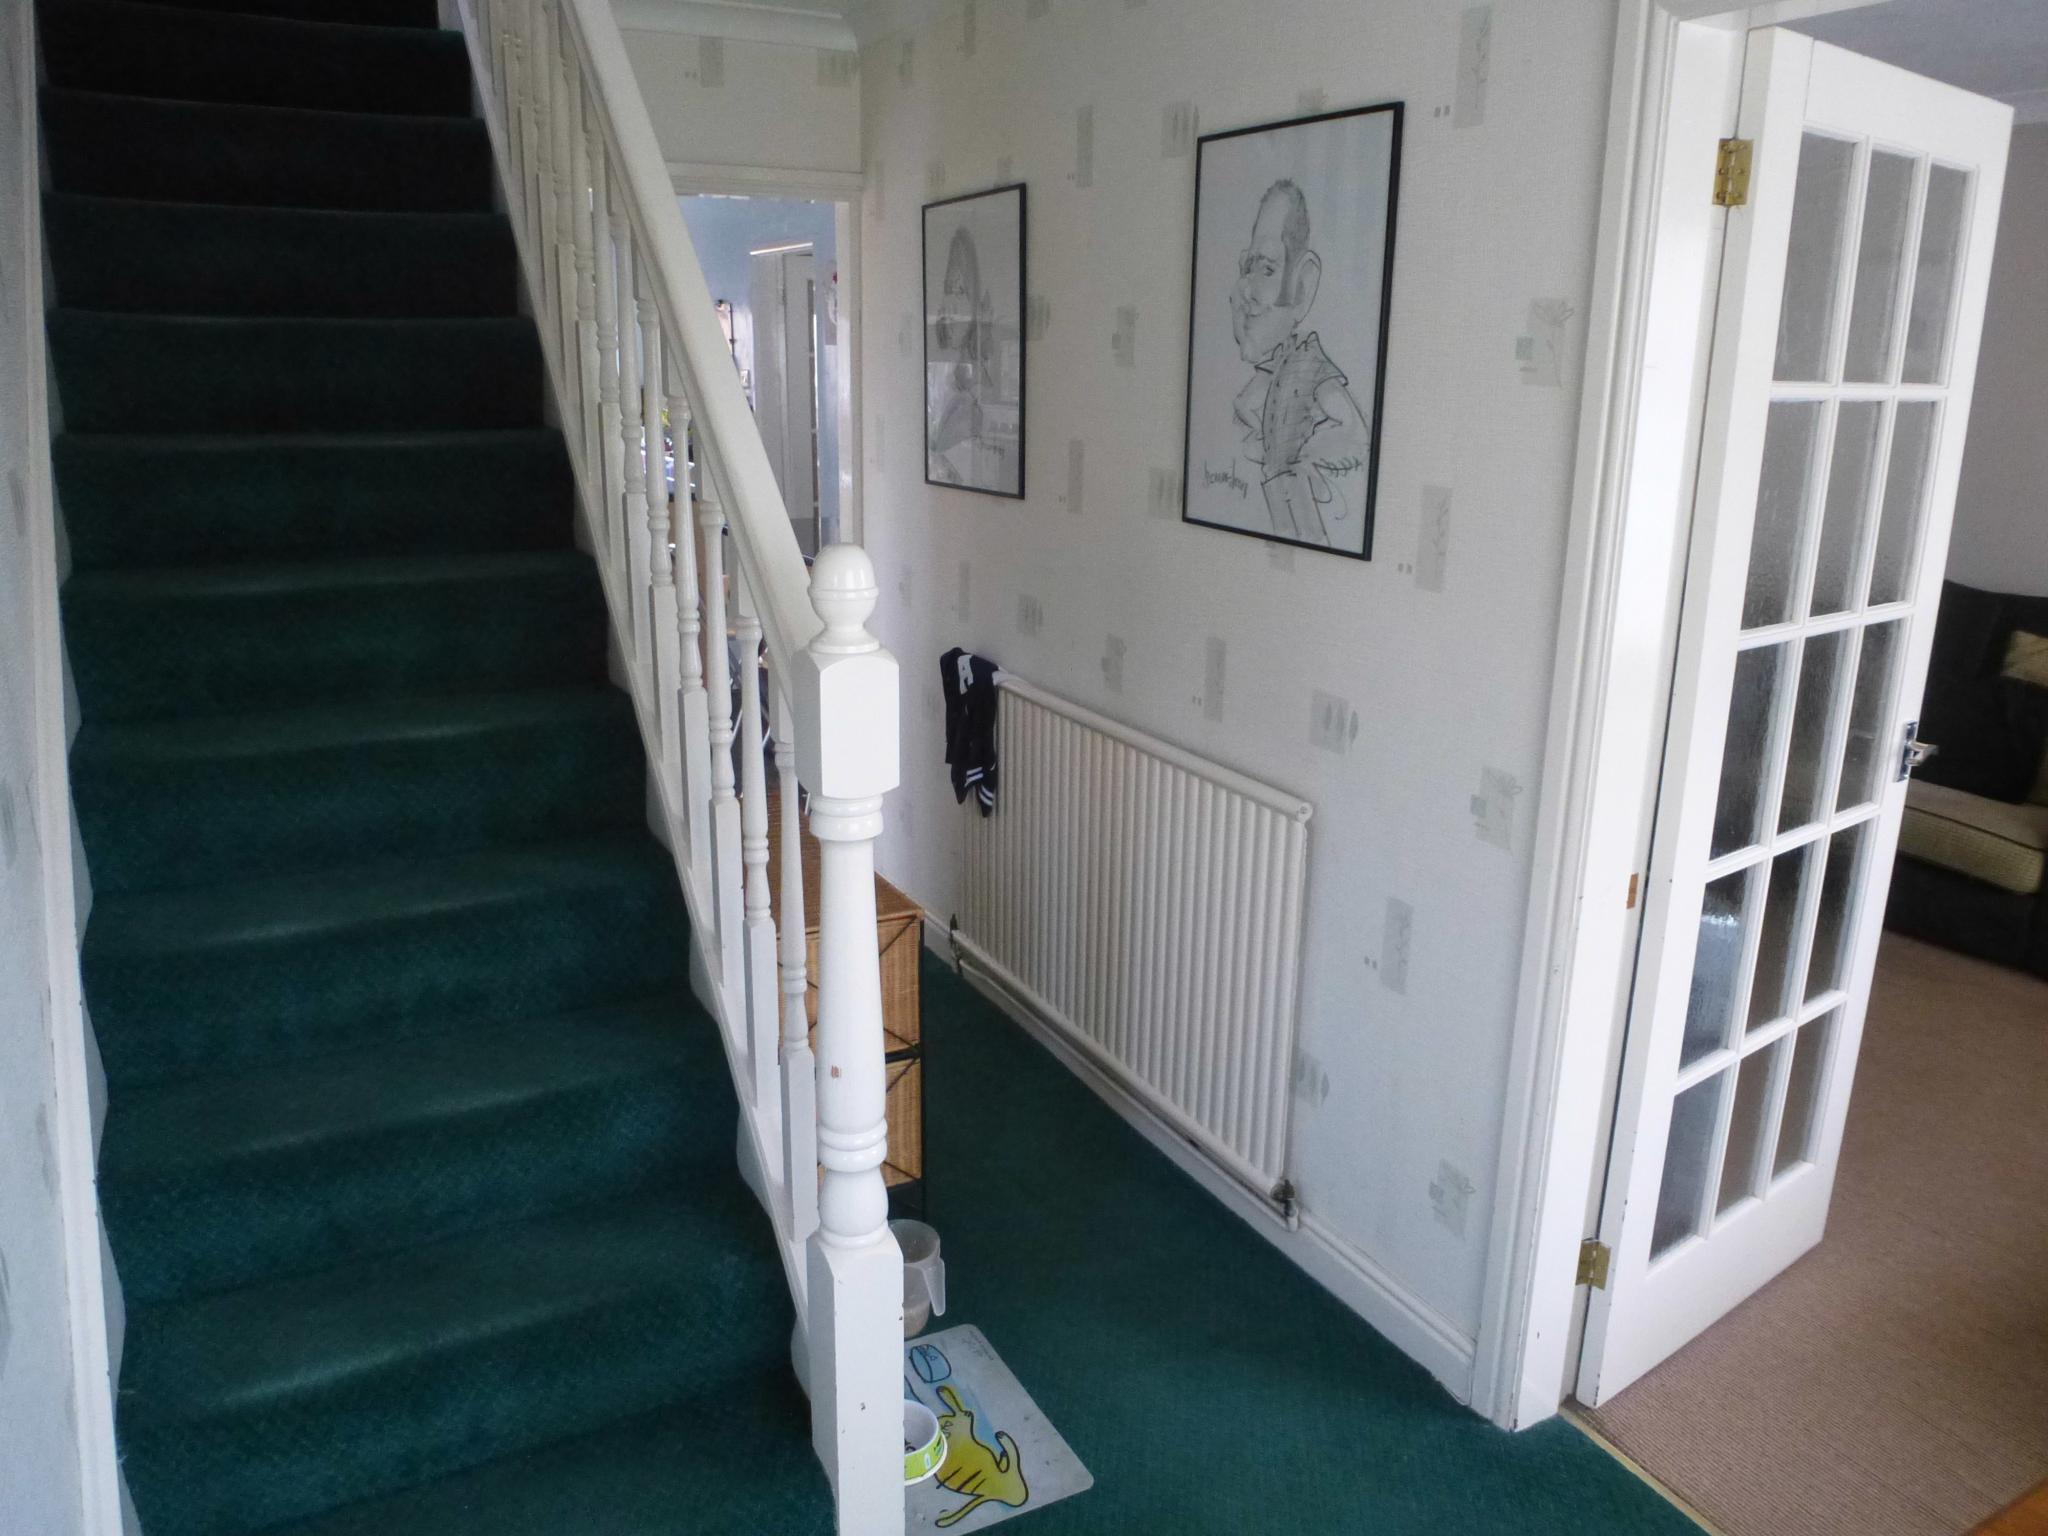 Image 1 of 1 of ENTRANCE HALL, on Accommodation Comprising for